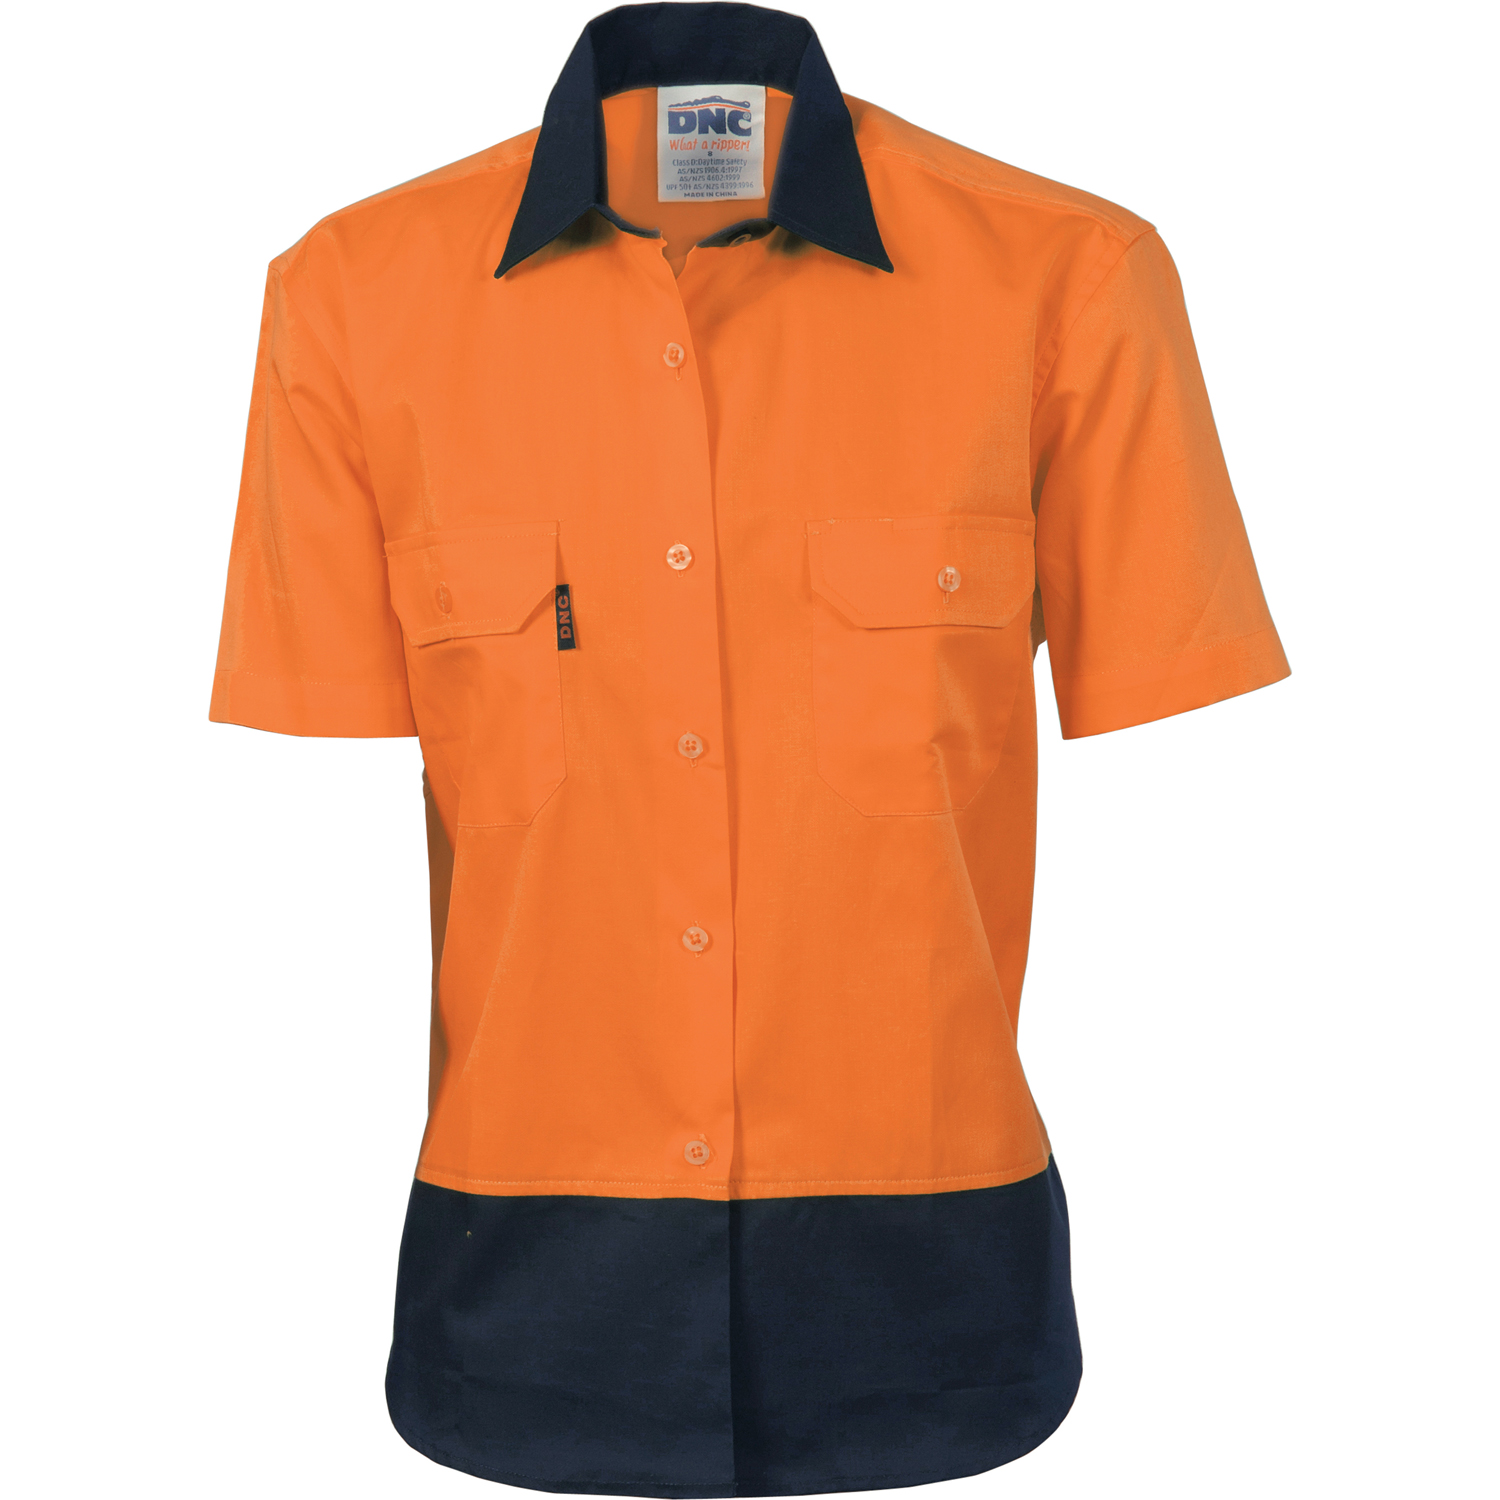 DNC 3931-190gsm Ladies HiVis Two Tone Cotton Drill Shirt, S/S